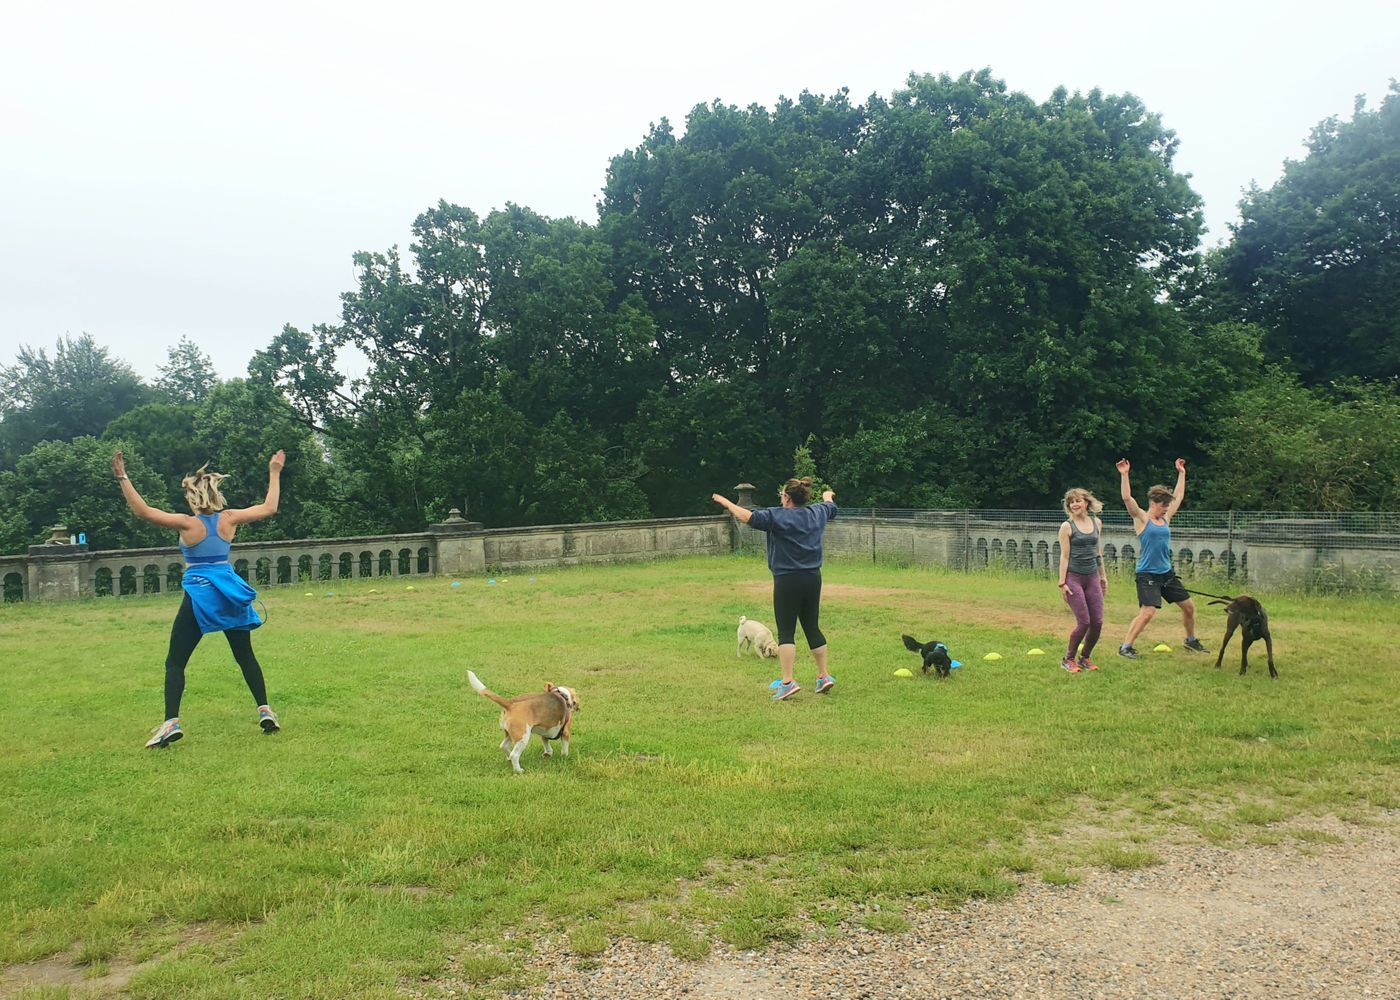 I think it's fair to say the [Woof Camp](classes/4eXY9sAhENjH) trial was a hit with dogs and humans alike!! Thank you everyone who joined in the fun! See you for round 2 on Sunday morning 🐶🤸♀️